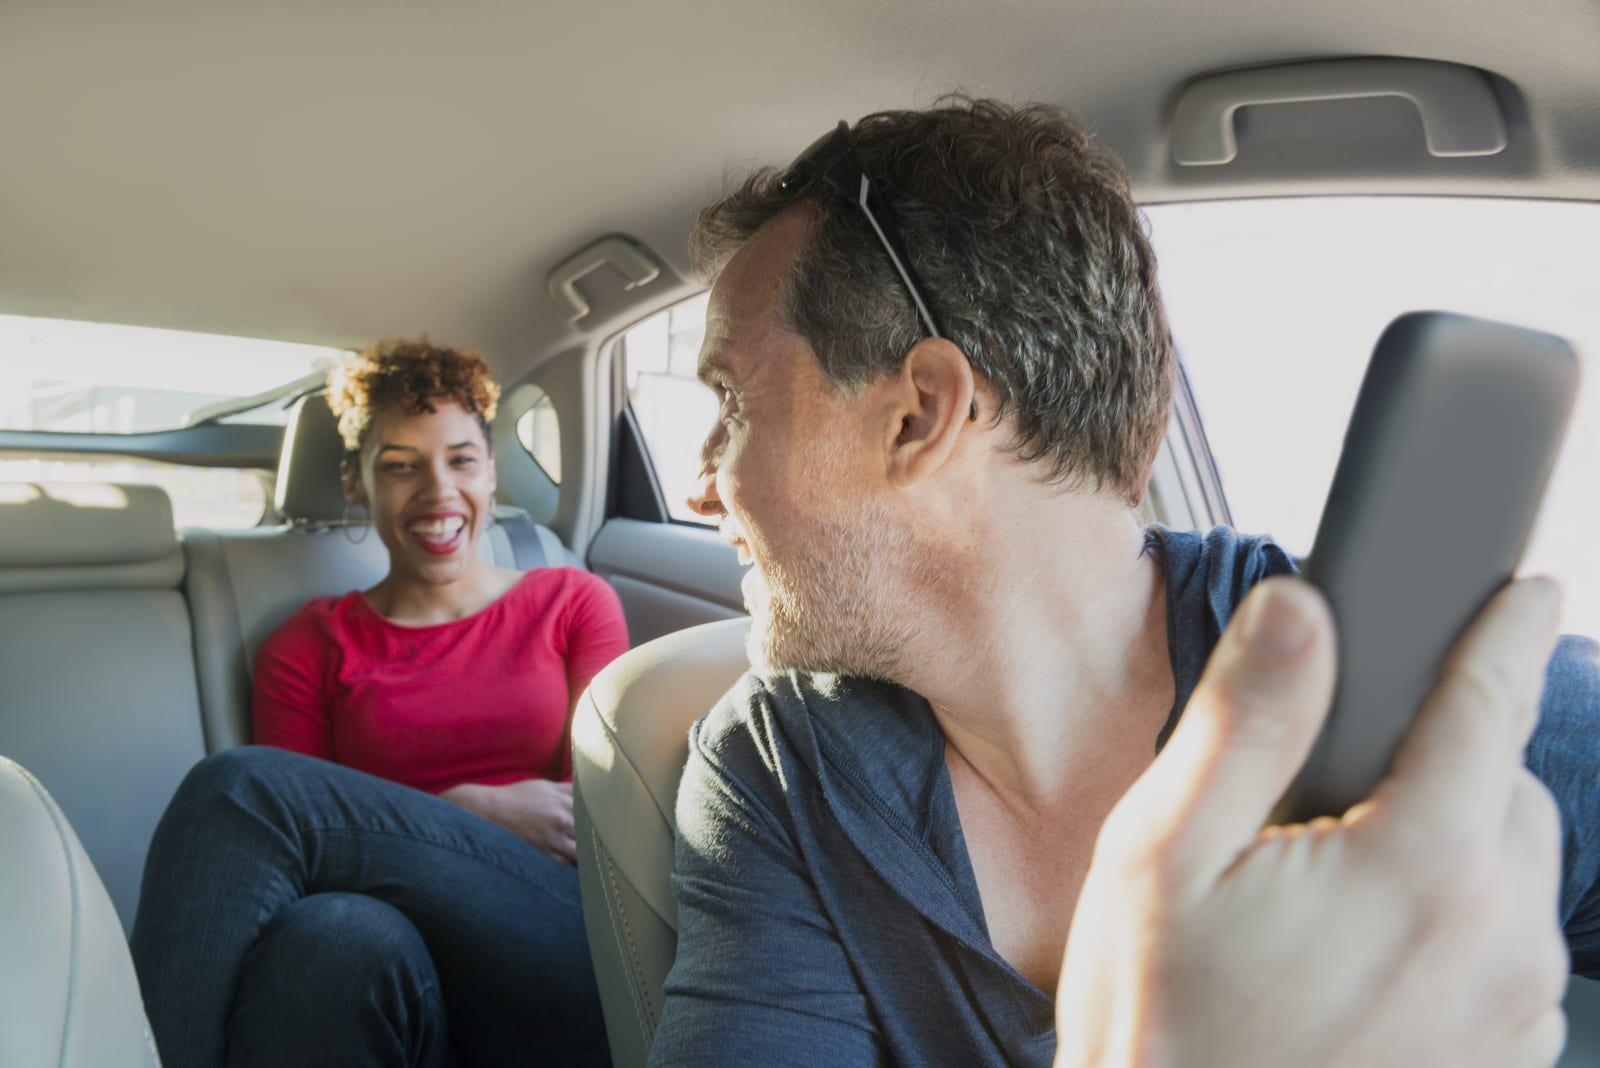 male-driver-with-mobile-phone-greets-hap